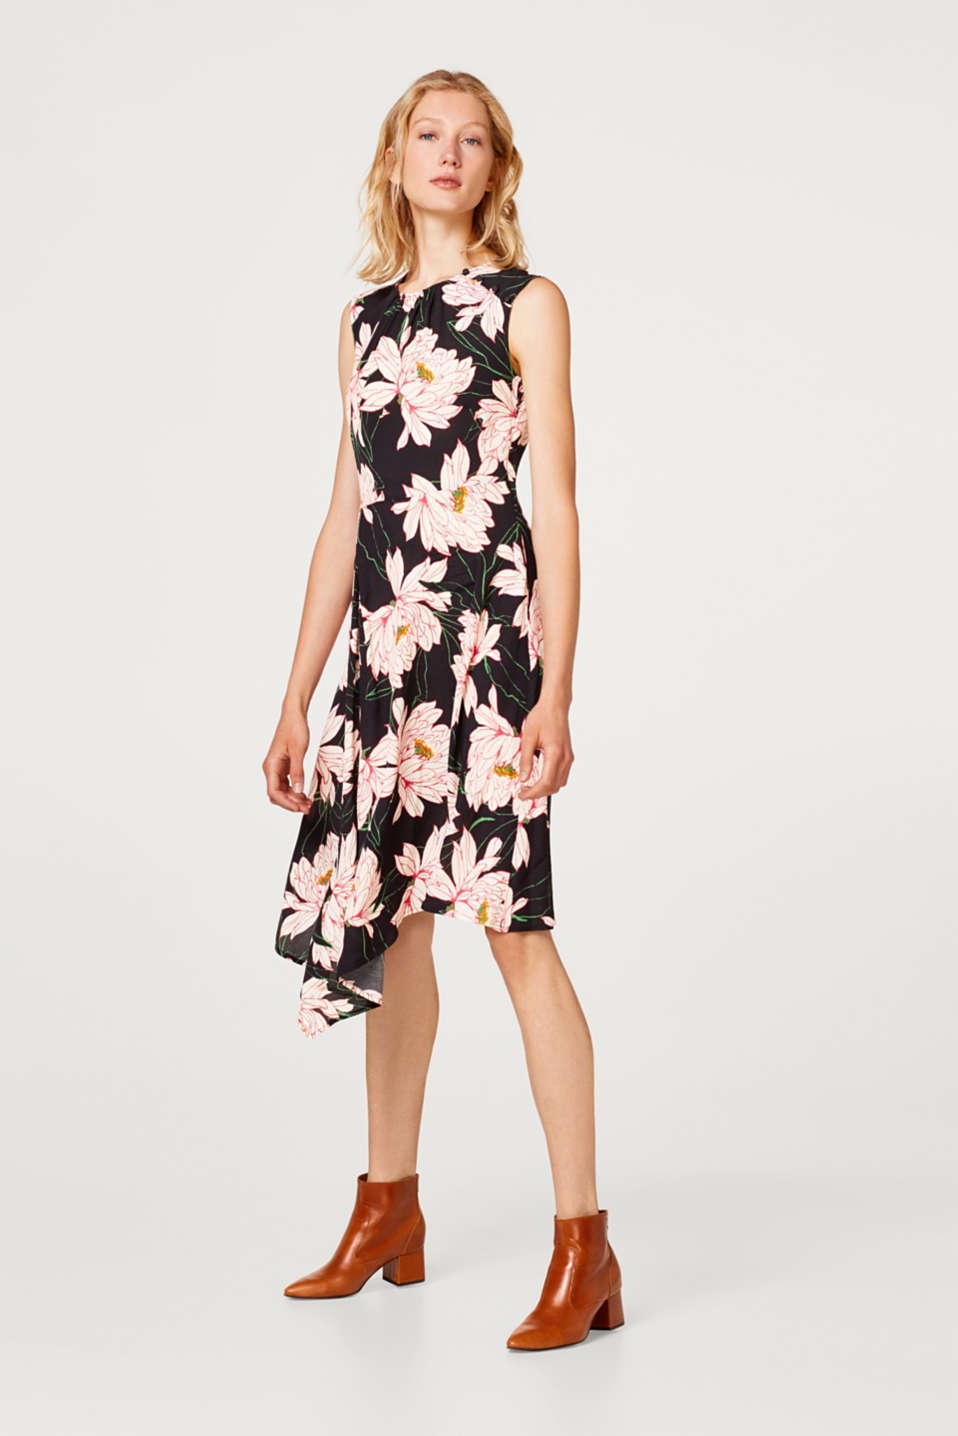 Sleeveless crêpe dress with a floral print